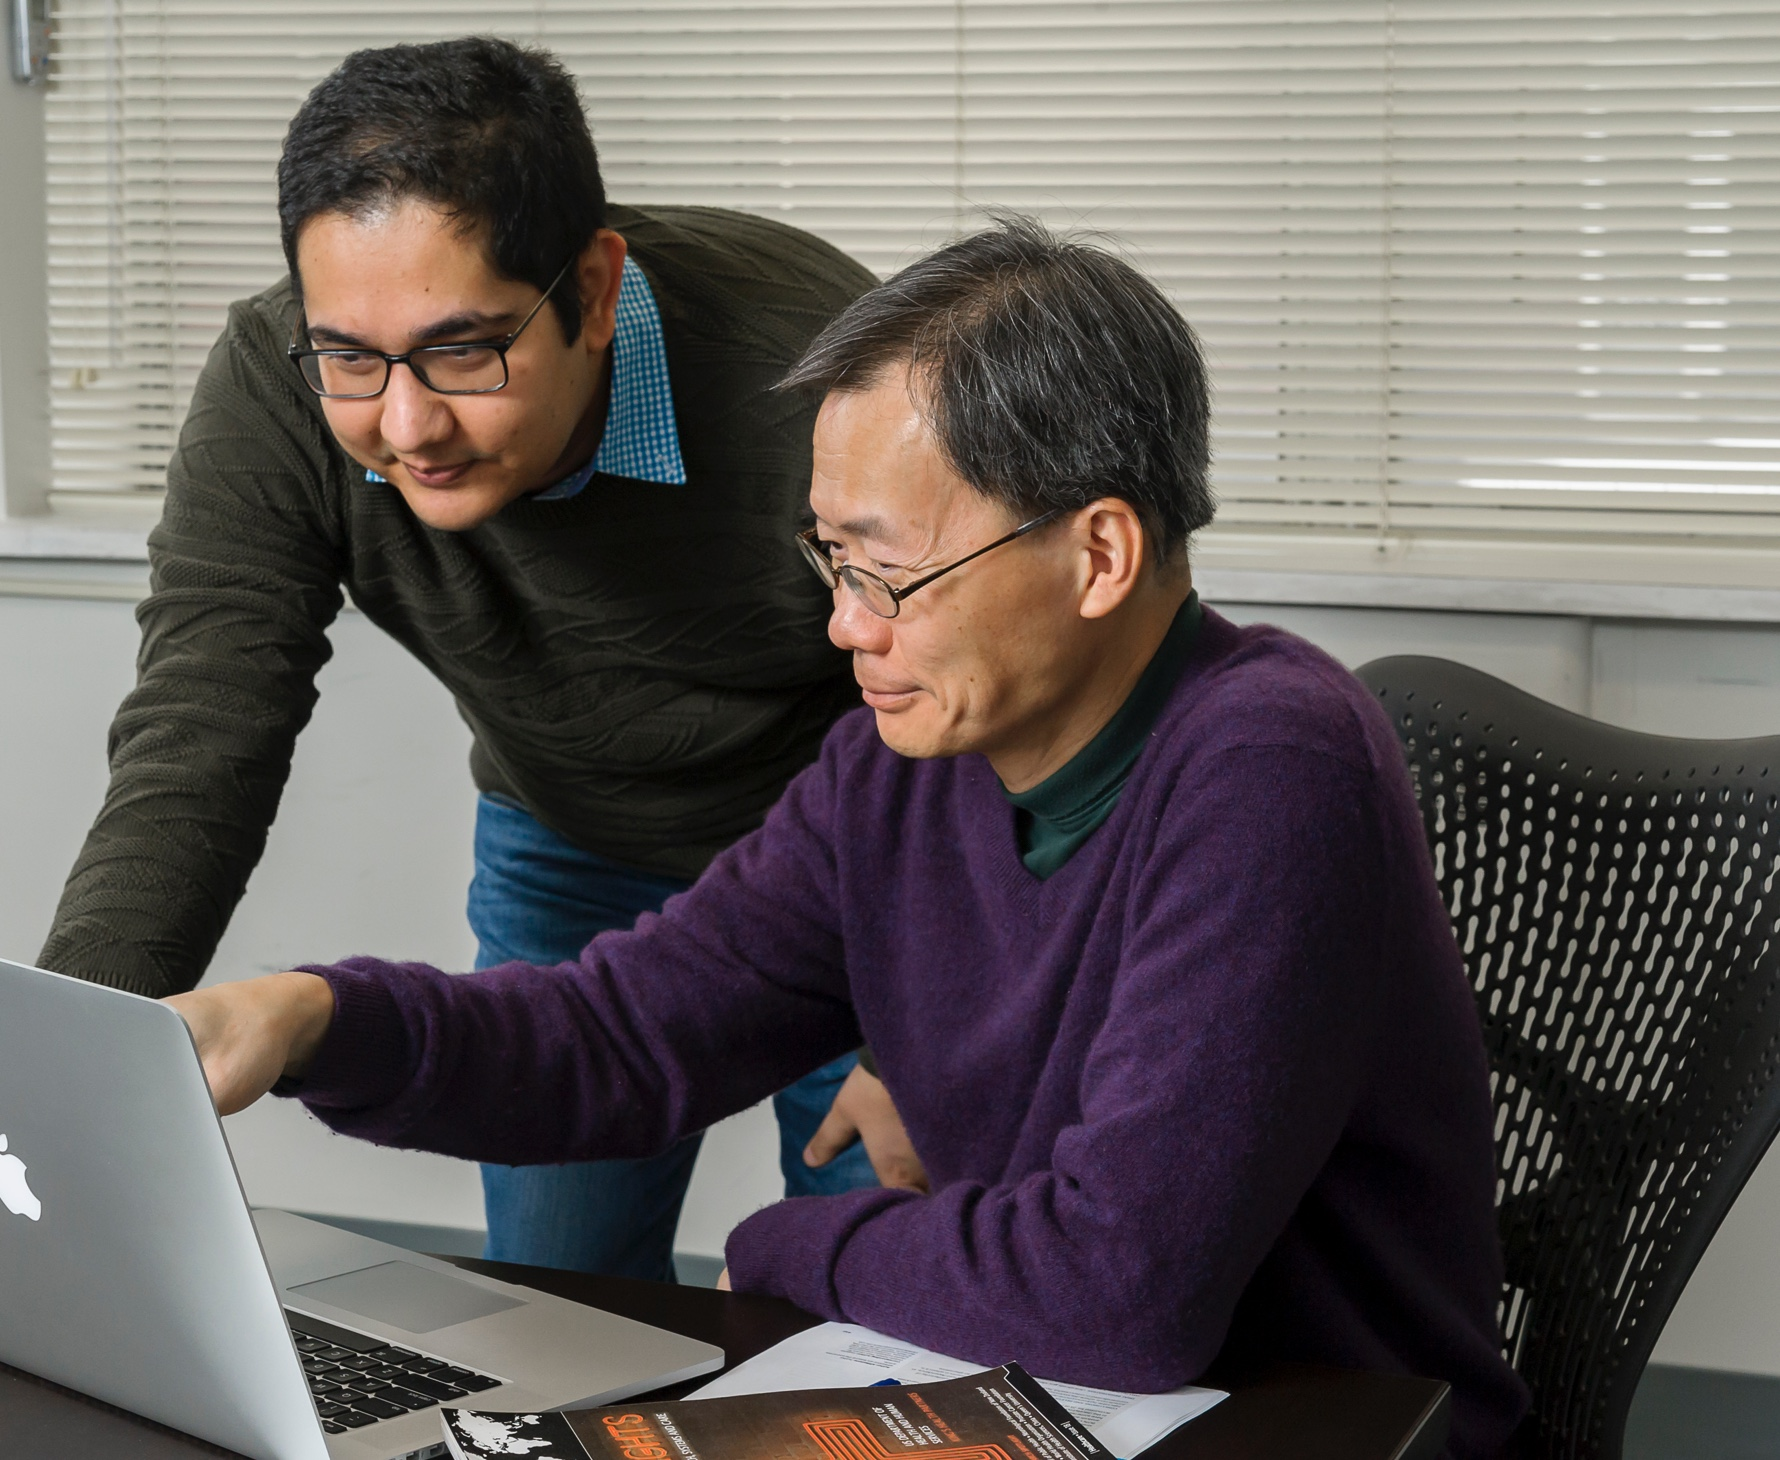 Scientists Drs. Hubert Wong and Ehsan Karim analyze data on computer, medical device clinical studies